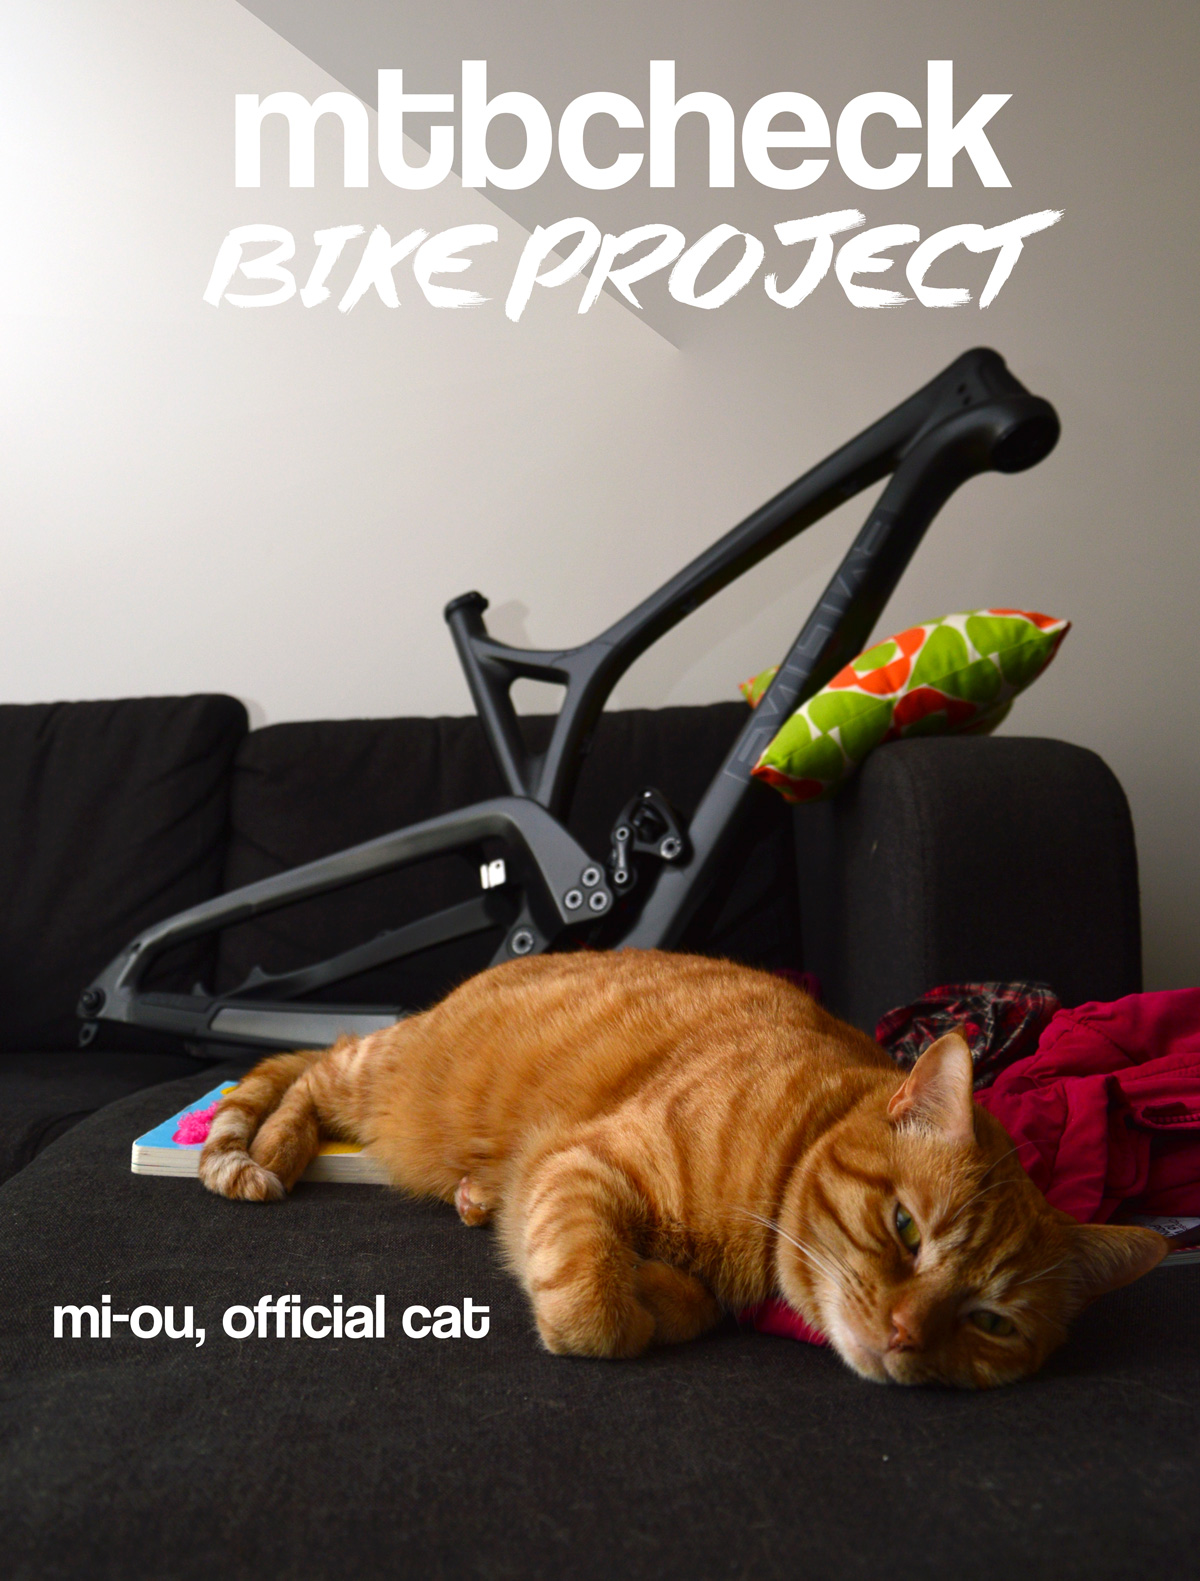 mi-ou-official-cat-mtbcheck-bike-project